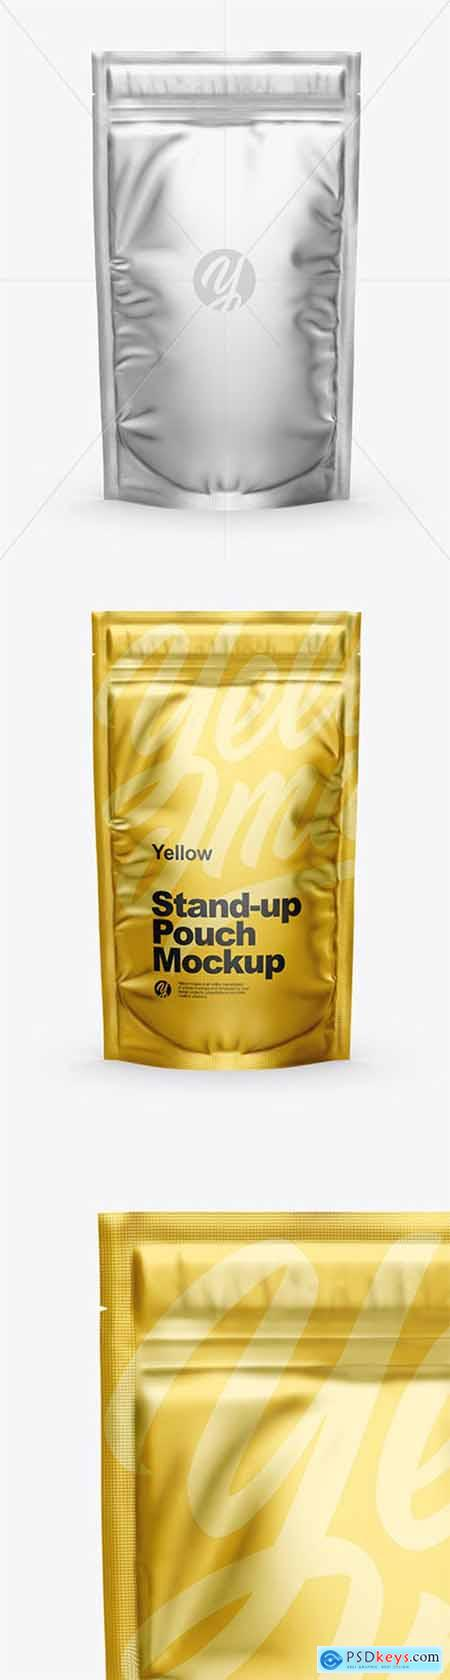 Matte Metallic Stand Up Pouch with Zipper Mockup 51161